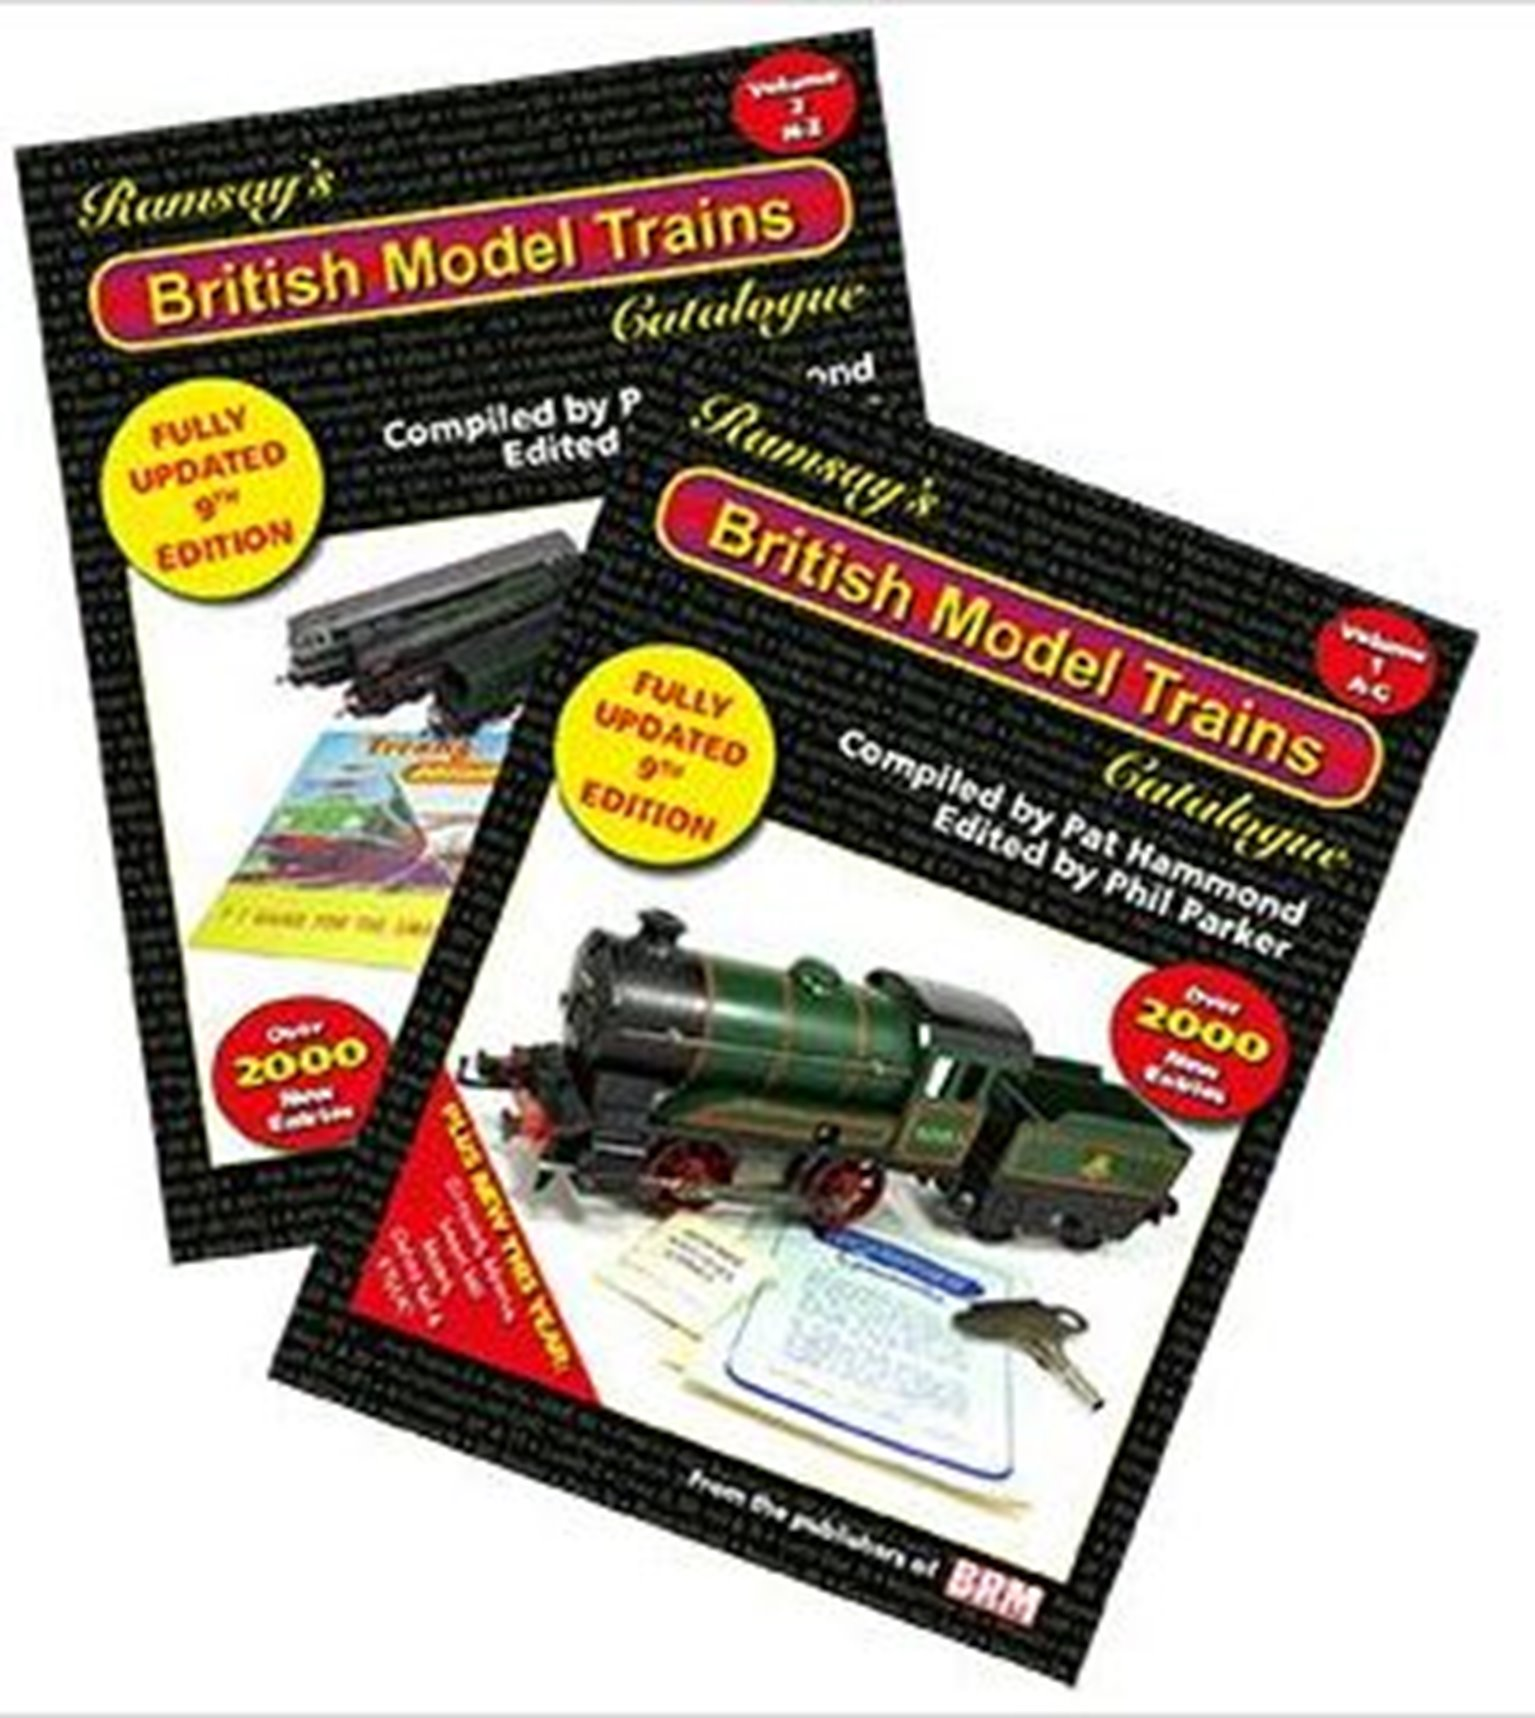 Ramsay's Guide to Model Trains 9th Edition - Volume 1 & Volume 2